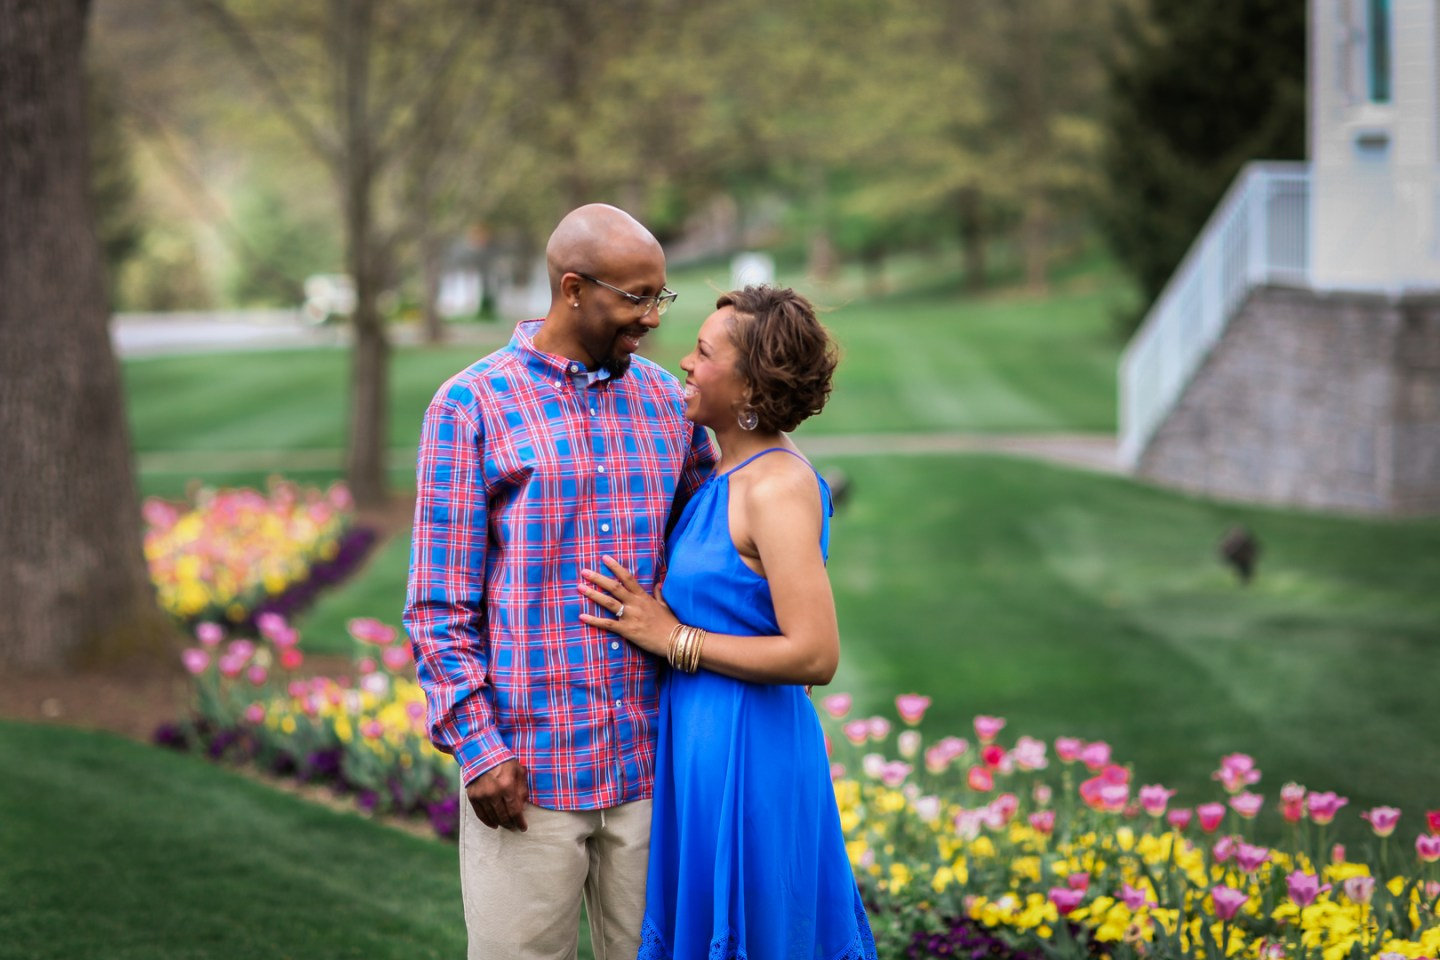 xj09esuyxfc9fve8wv40_big West Virginia Engagement Session at the Greenbriar Resort